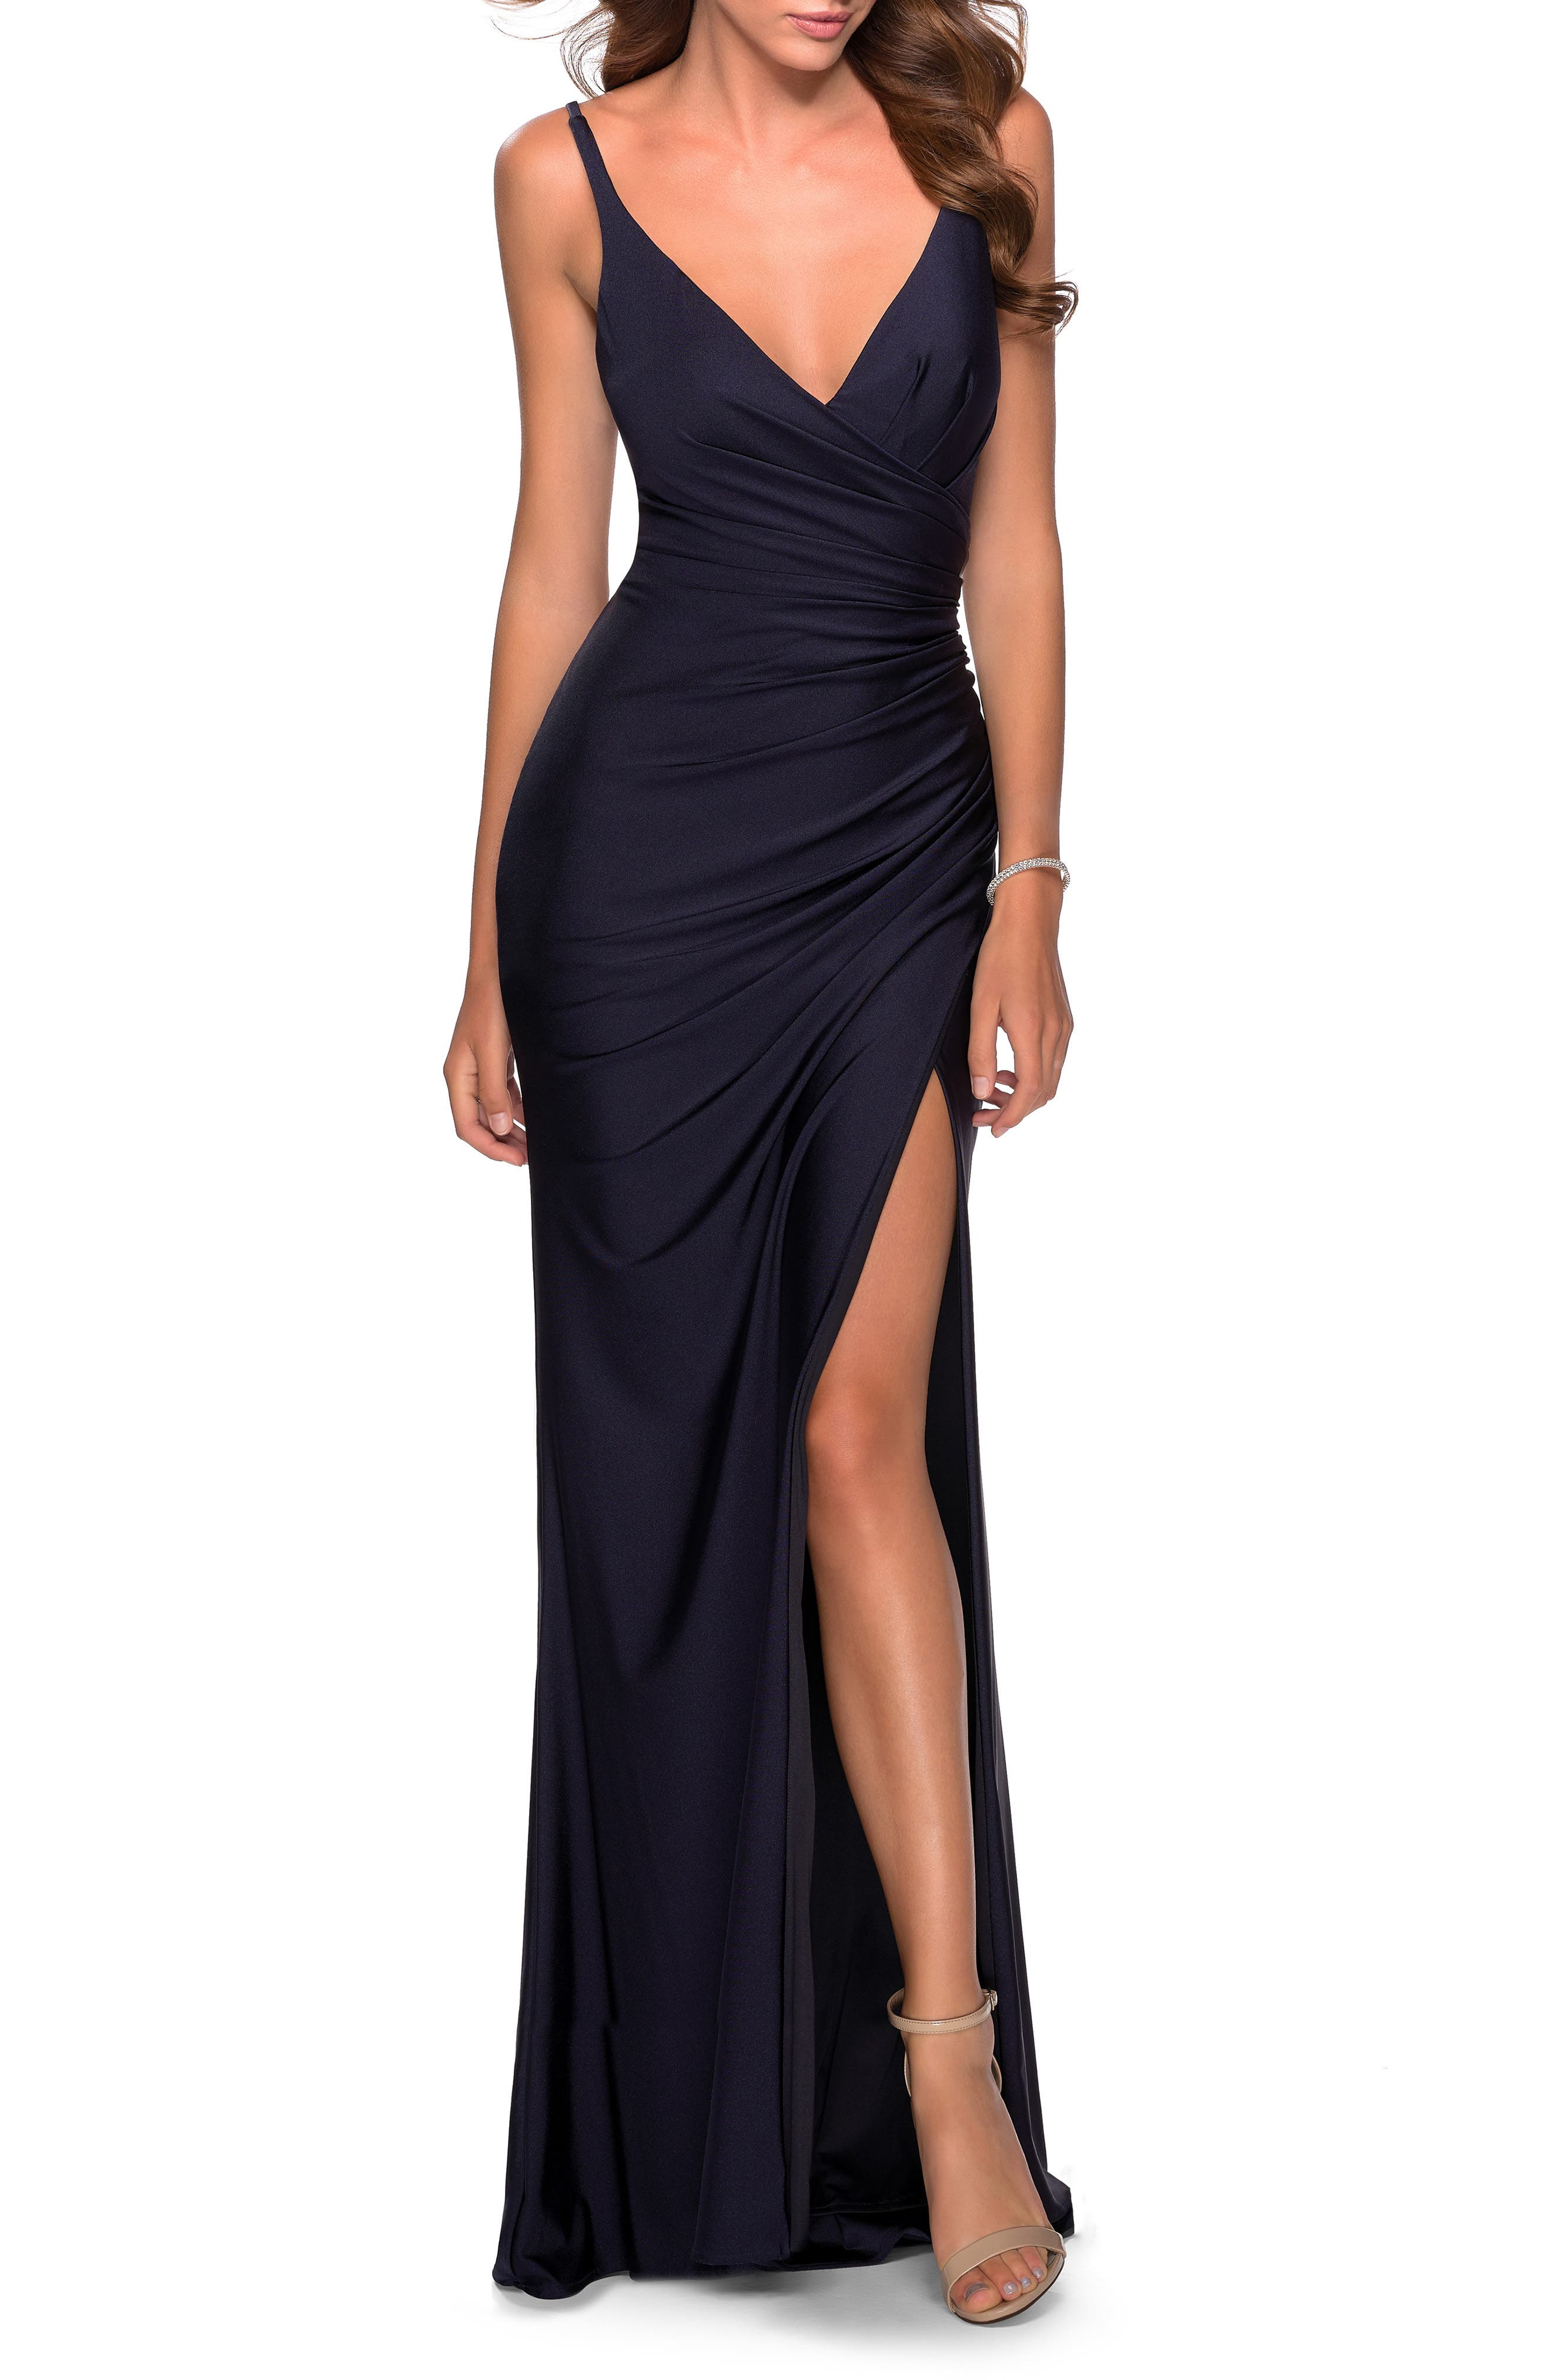 Make a leg-flaunting entrance, a back-baring exit and a memorable impression in between in this soft jersey gown cut to show some skin and ruched to flatter. Style Name: La Femme Ruched Jersey Gown. Style Number: 6024970. Available in stores.